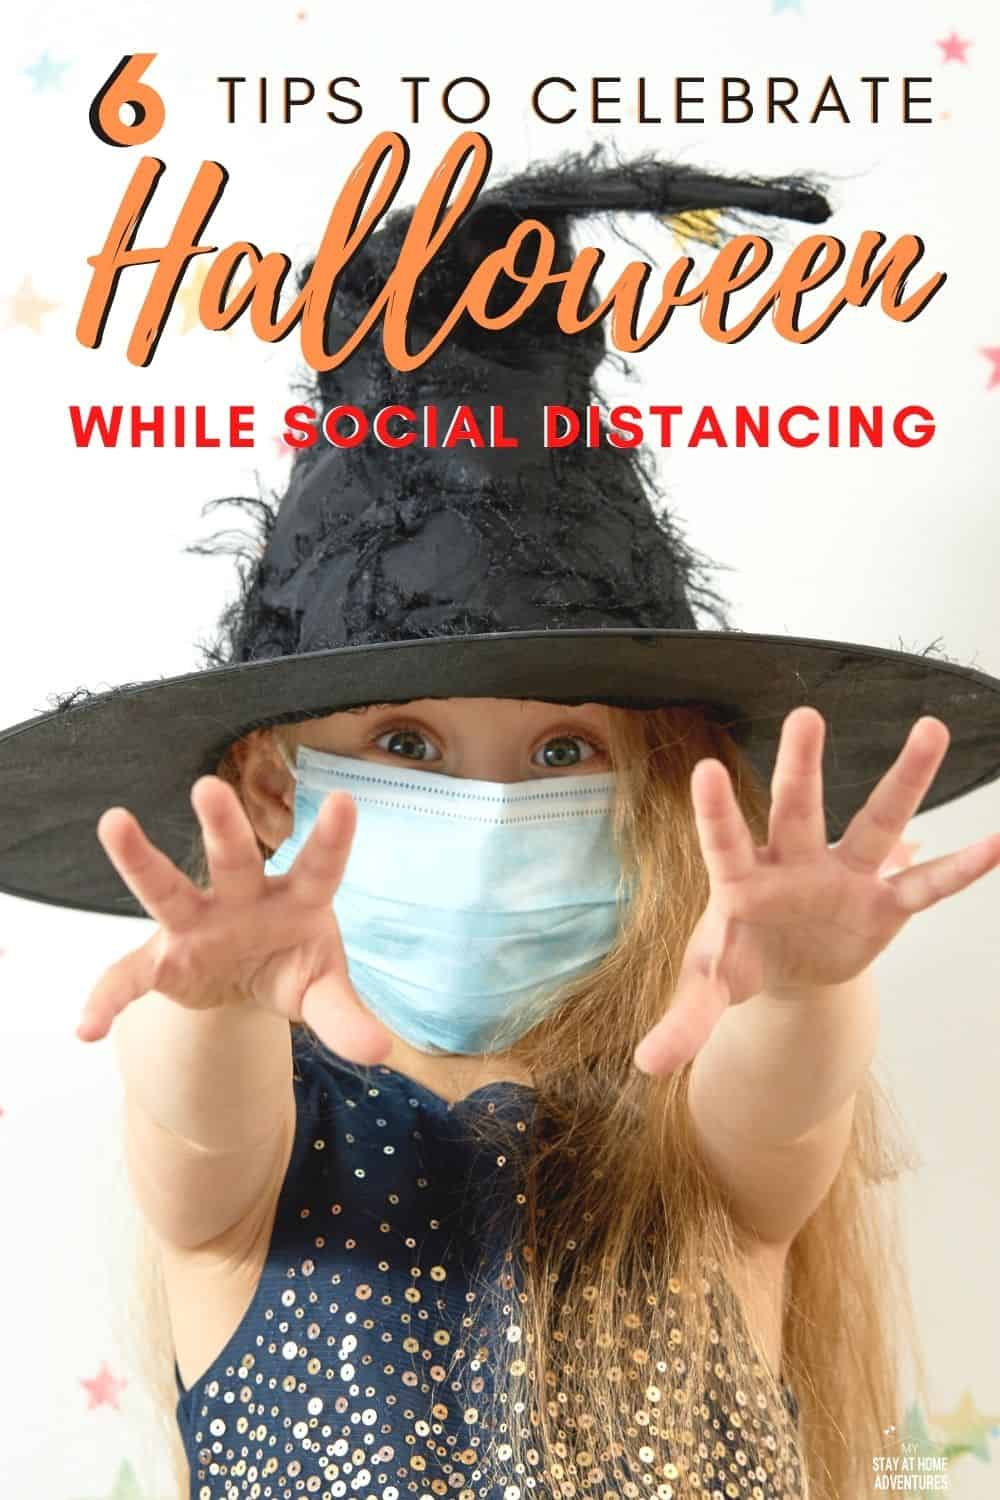 Halloween 2020 is not going to be the same, but that doesn't mean you can't enjoy it and make it memorable with these tips to celebrating Halloween while social distancing. #halloween #howto #tips #safehalloween via @mystayathome